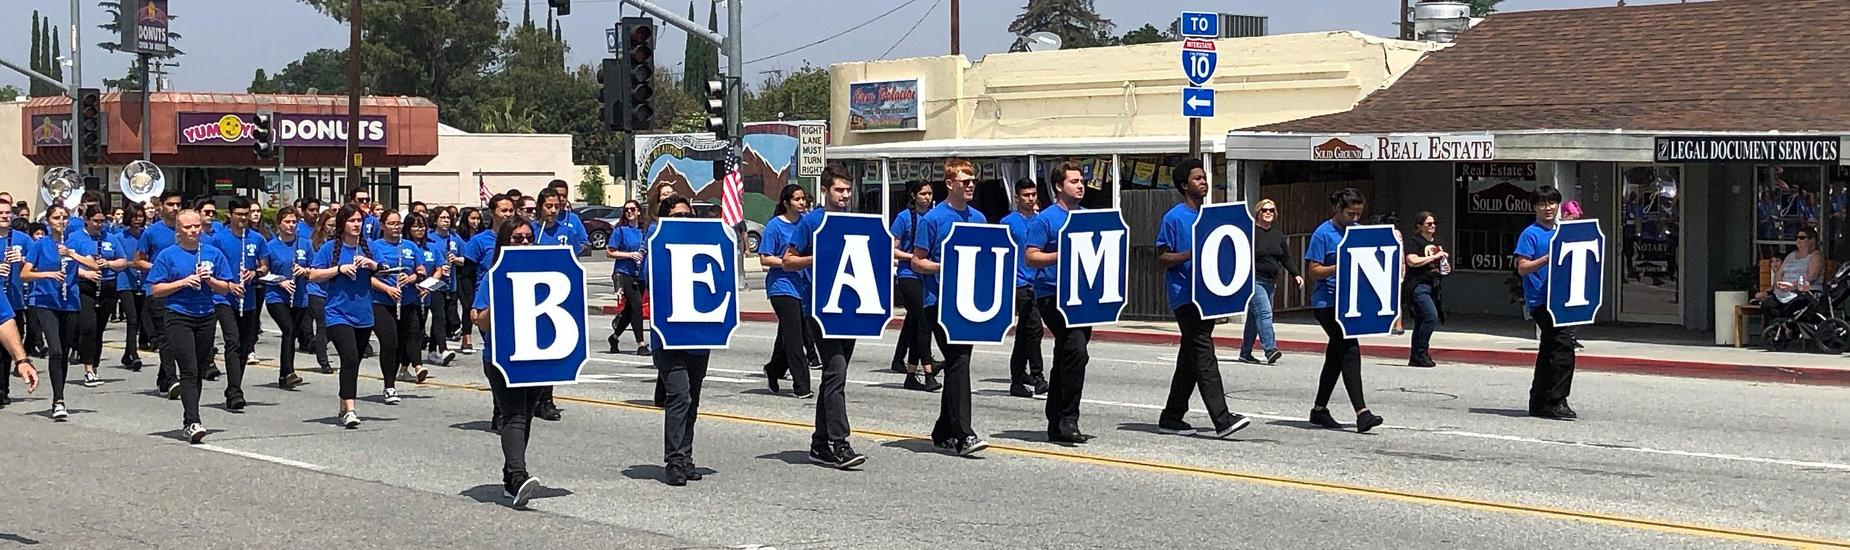 Beaumont High School Band Kicks Off Cherry Festival Parade